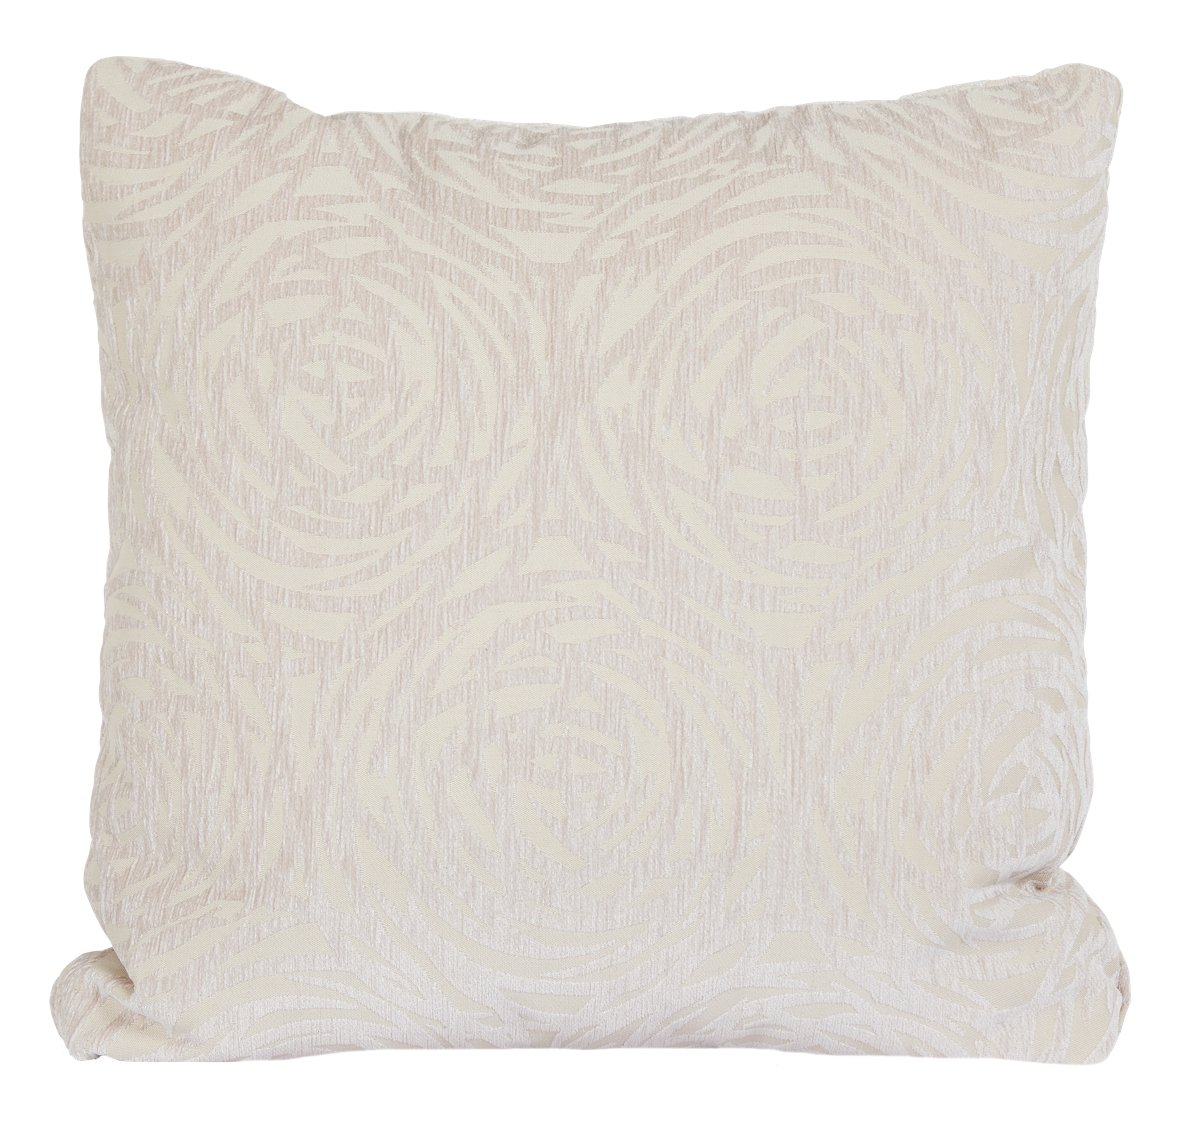 Mod Circles Light Beige Fabric Square Accent Pillow